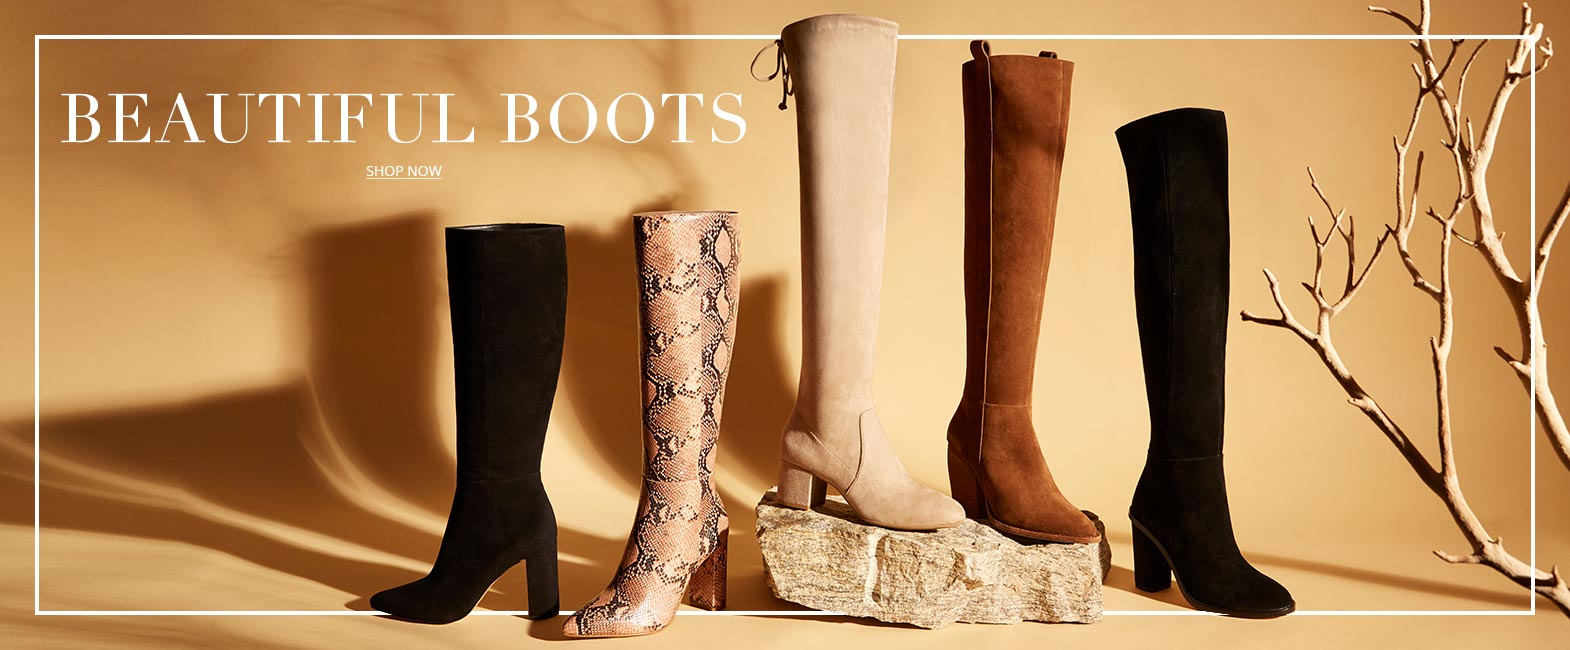 Shop all Beautiful Boots - Shop Now